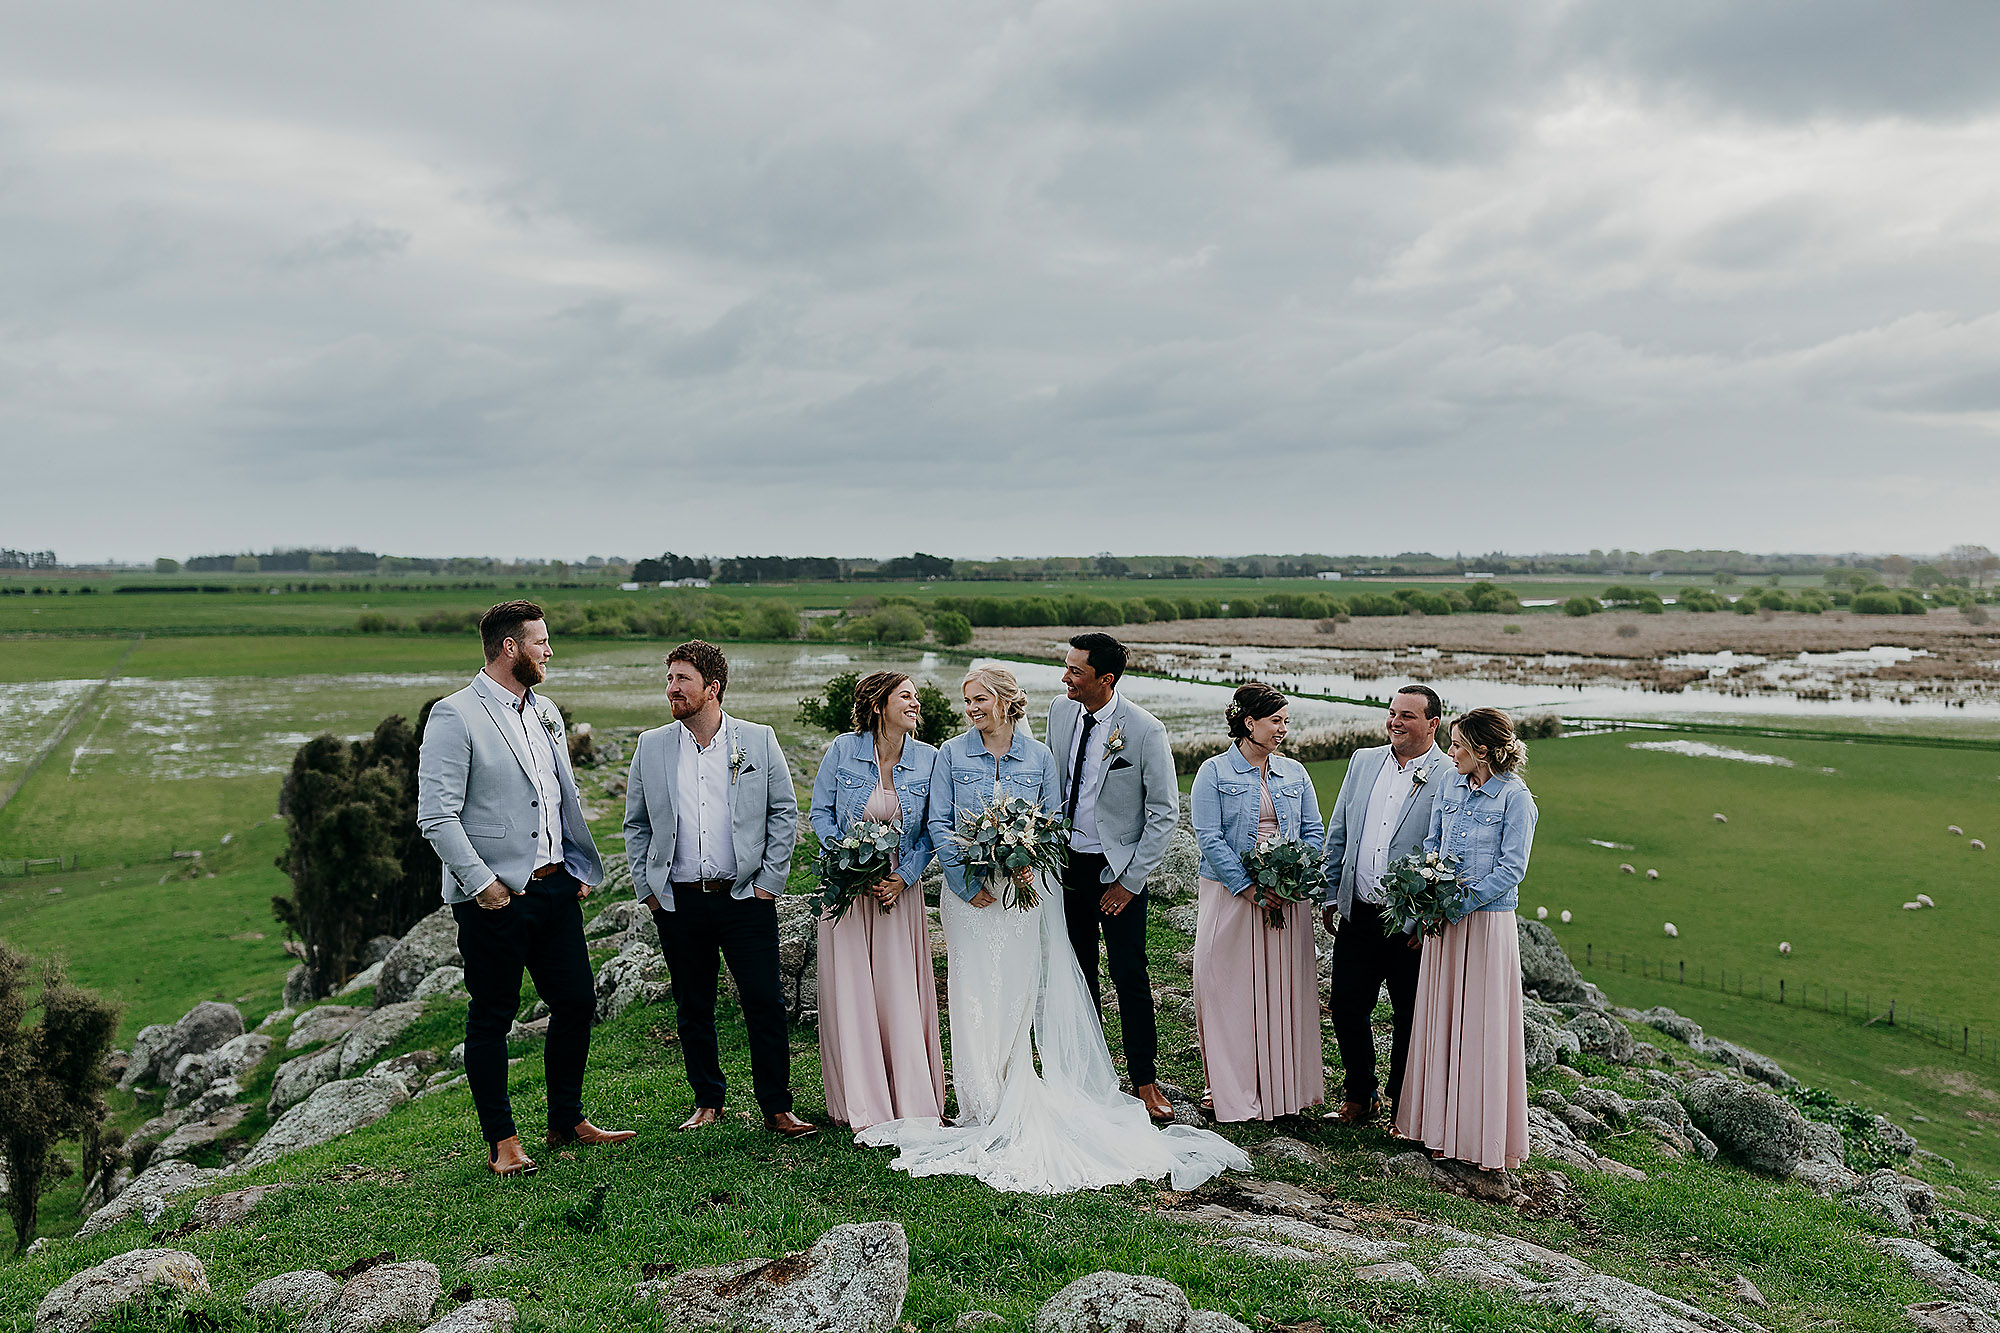 bridal party photo bridesmaids and groomsmen christchurch wedding photographer